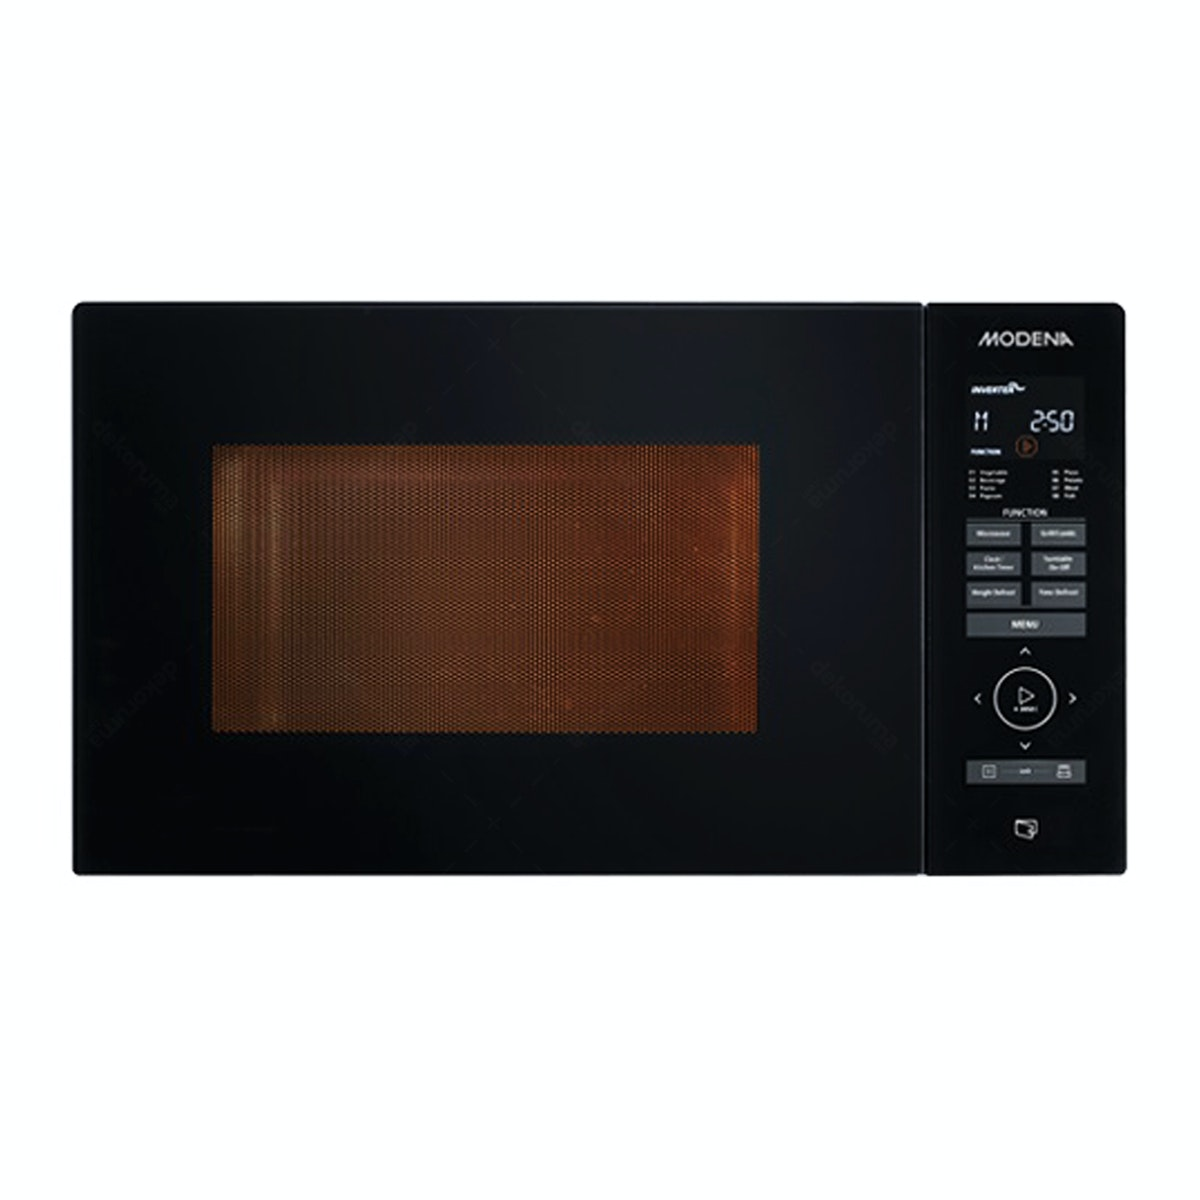 Modena Microwave Oven Freestanding 25 Liter ESPORRE MG 2555